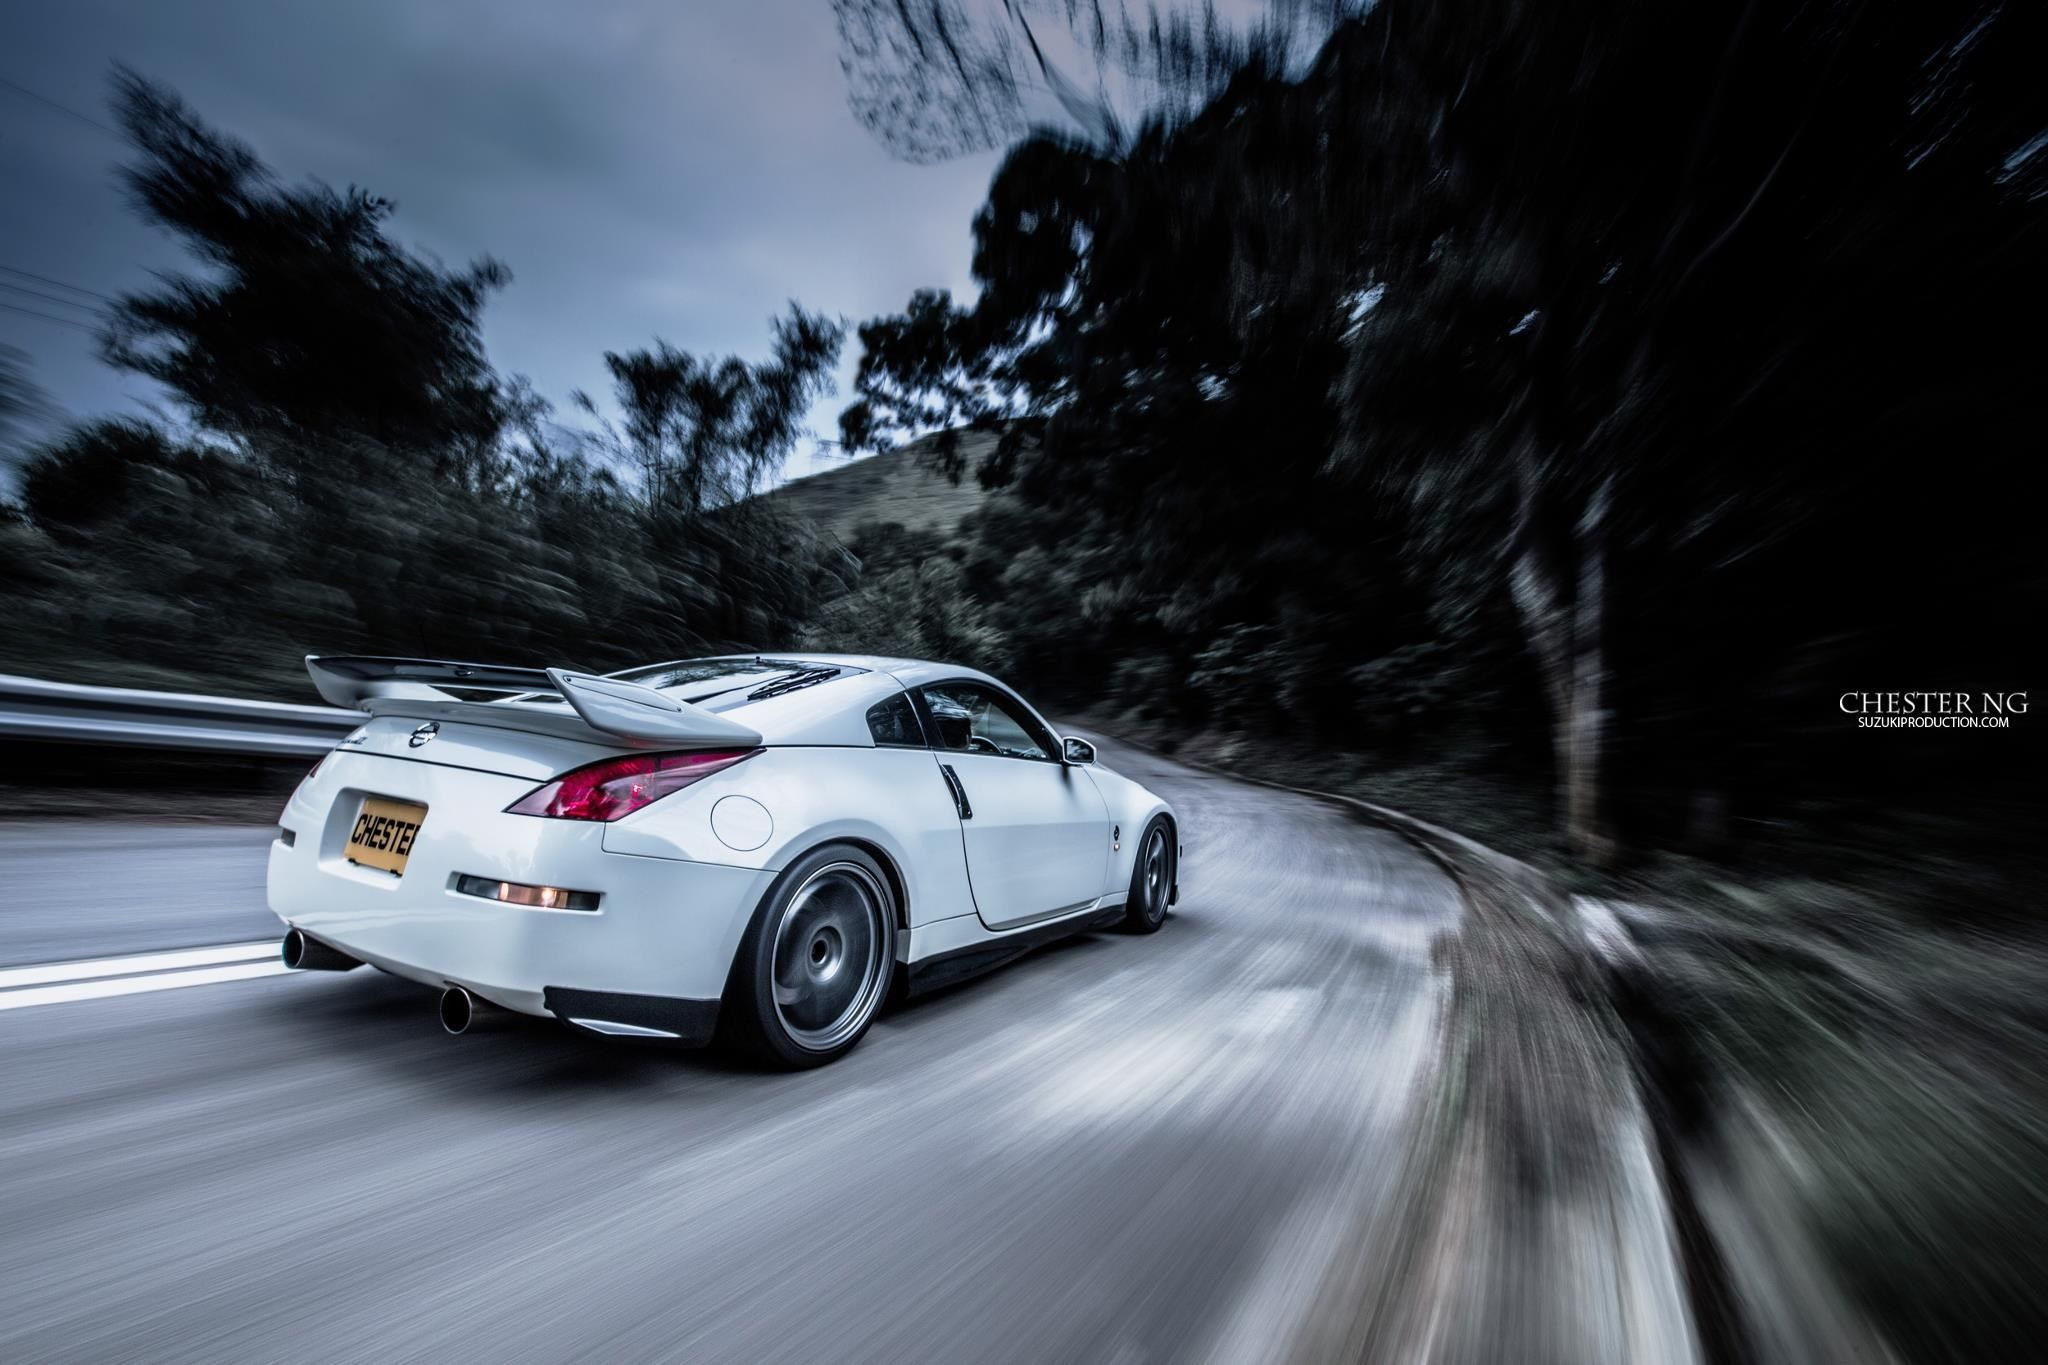 nissan 350z wallpaper: high definition backgrounds (asbury blare